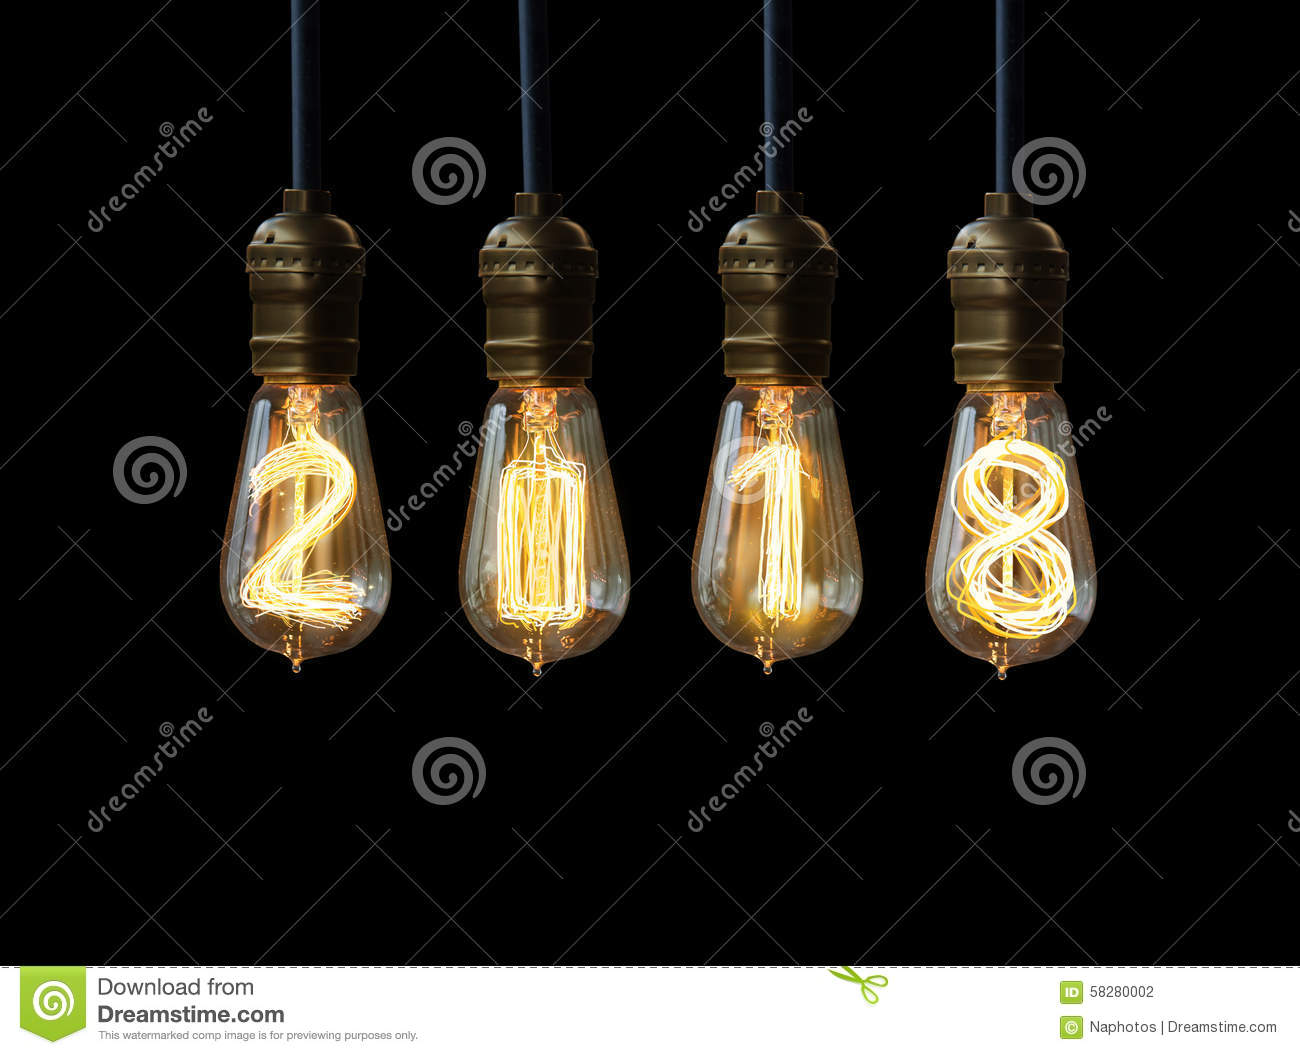 Download New year 2018 stock illustration. Illustration of design - 58280002